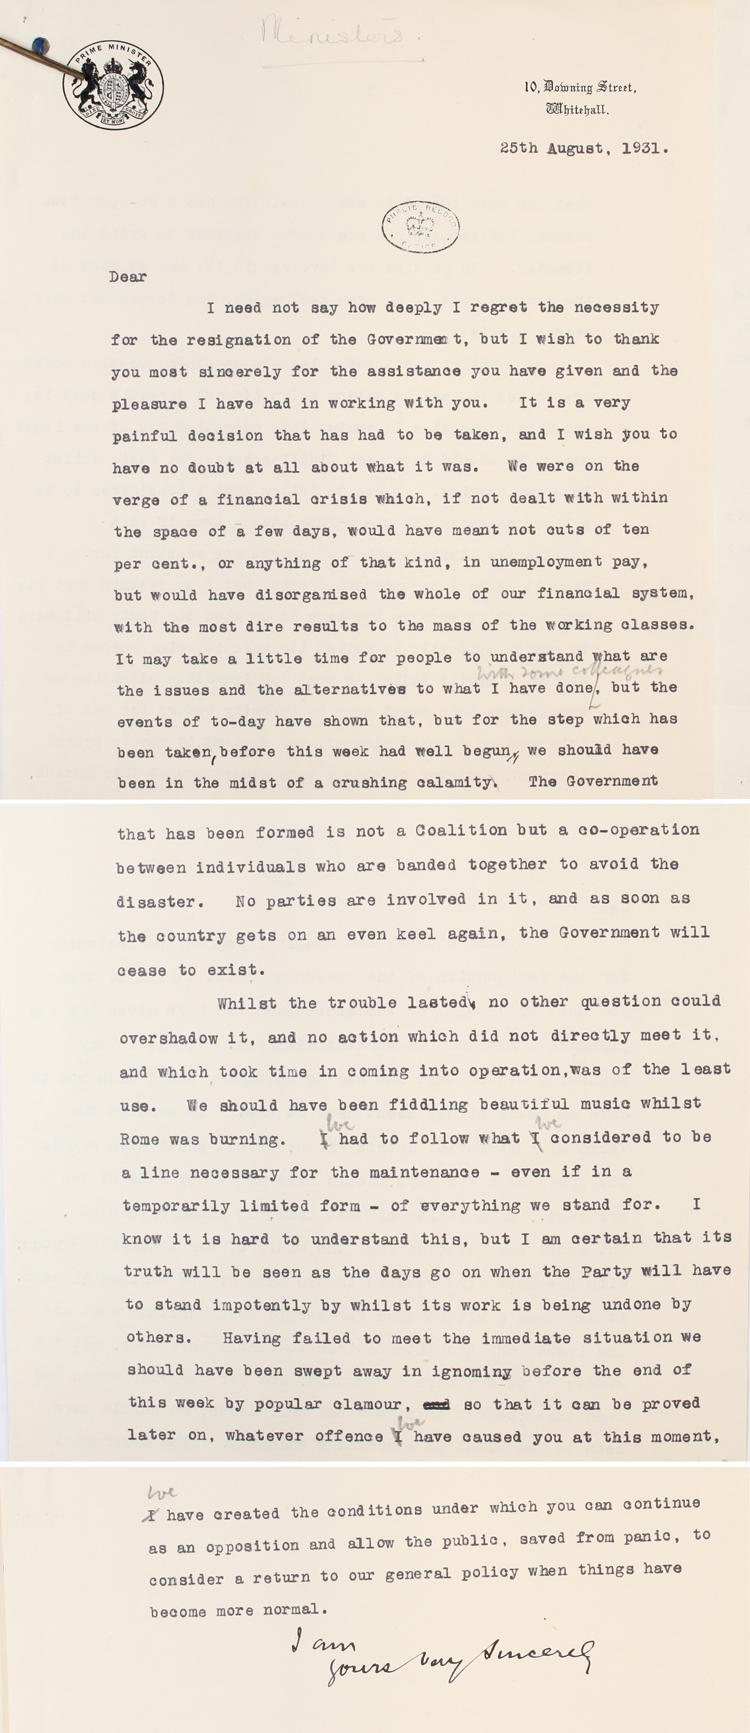 Draft letter from Labour Prime Minister Ramsay MacDonald to his ministers, 25th August 1931 (PRO 30/69/38310)